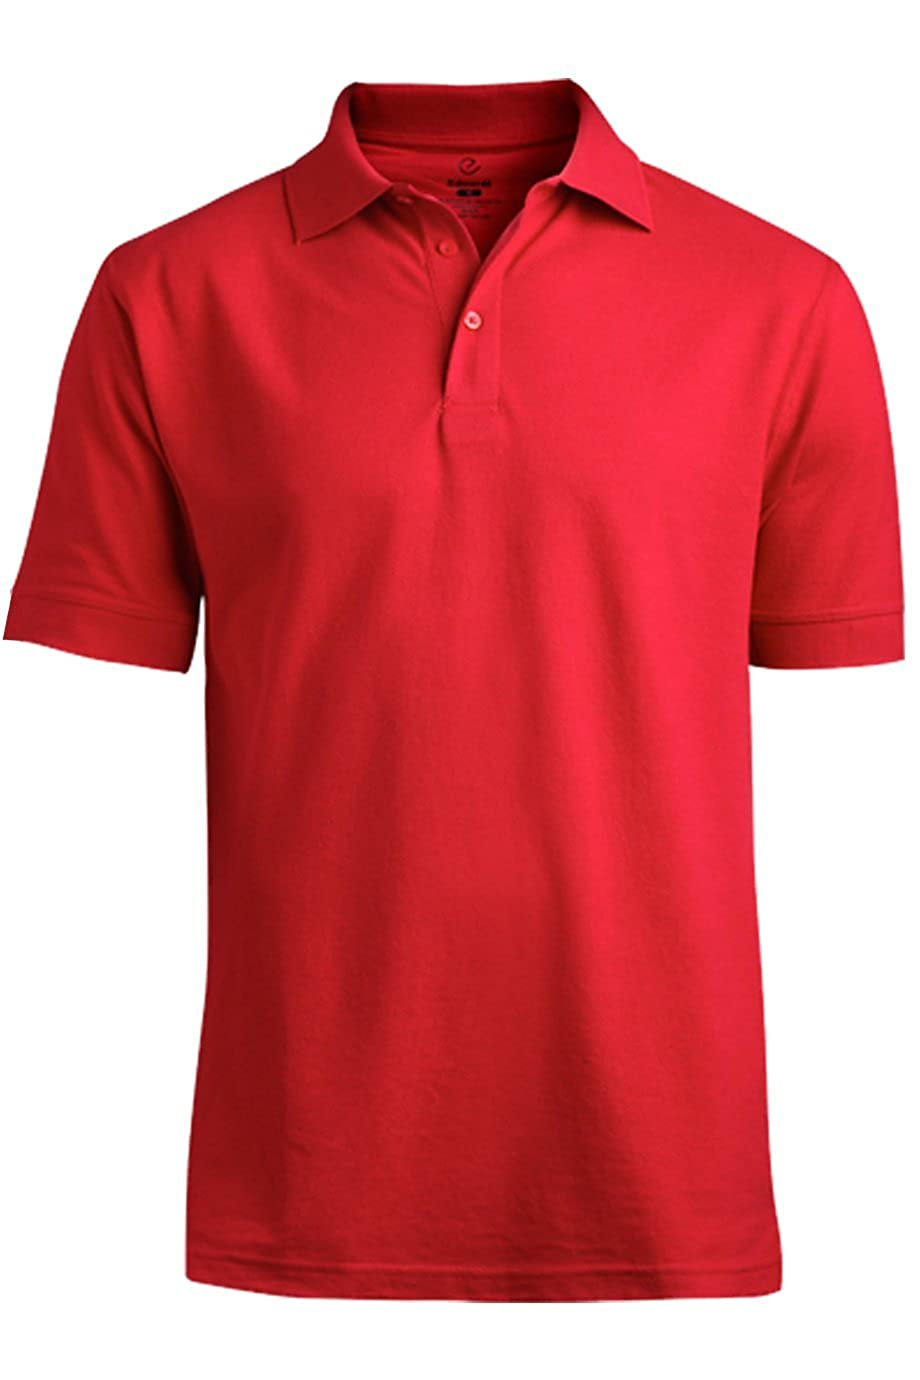 Edwards Garment Mens Big And Tall Soft Pique Polo Shirt/_RED/_XXXXXX-Large Tall